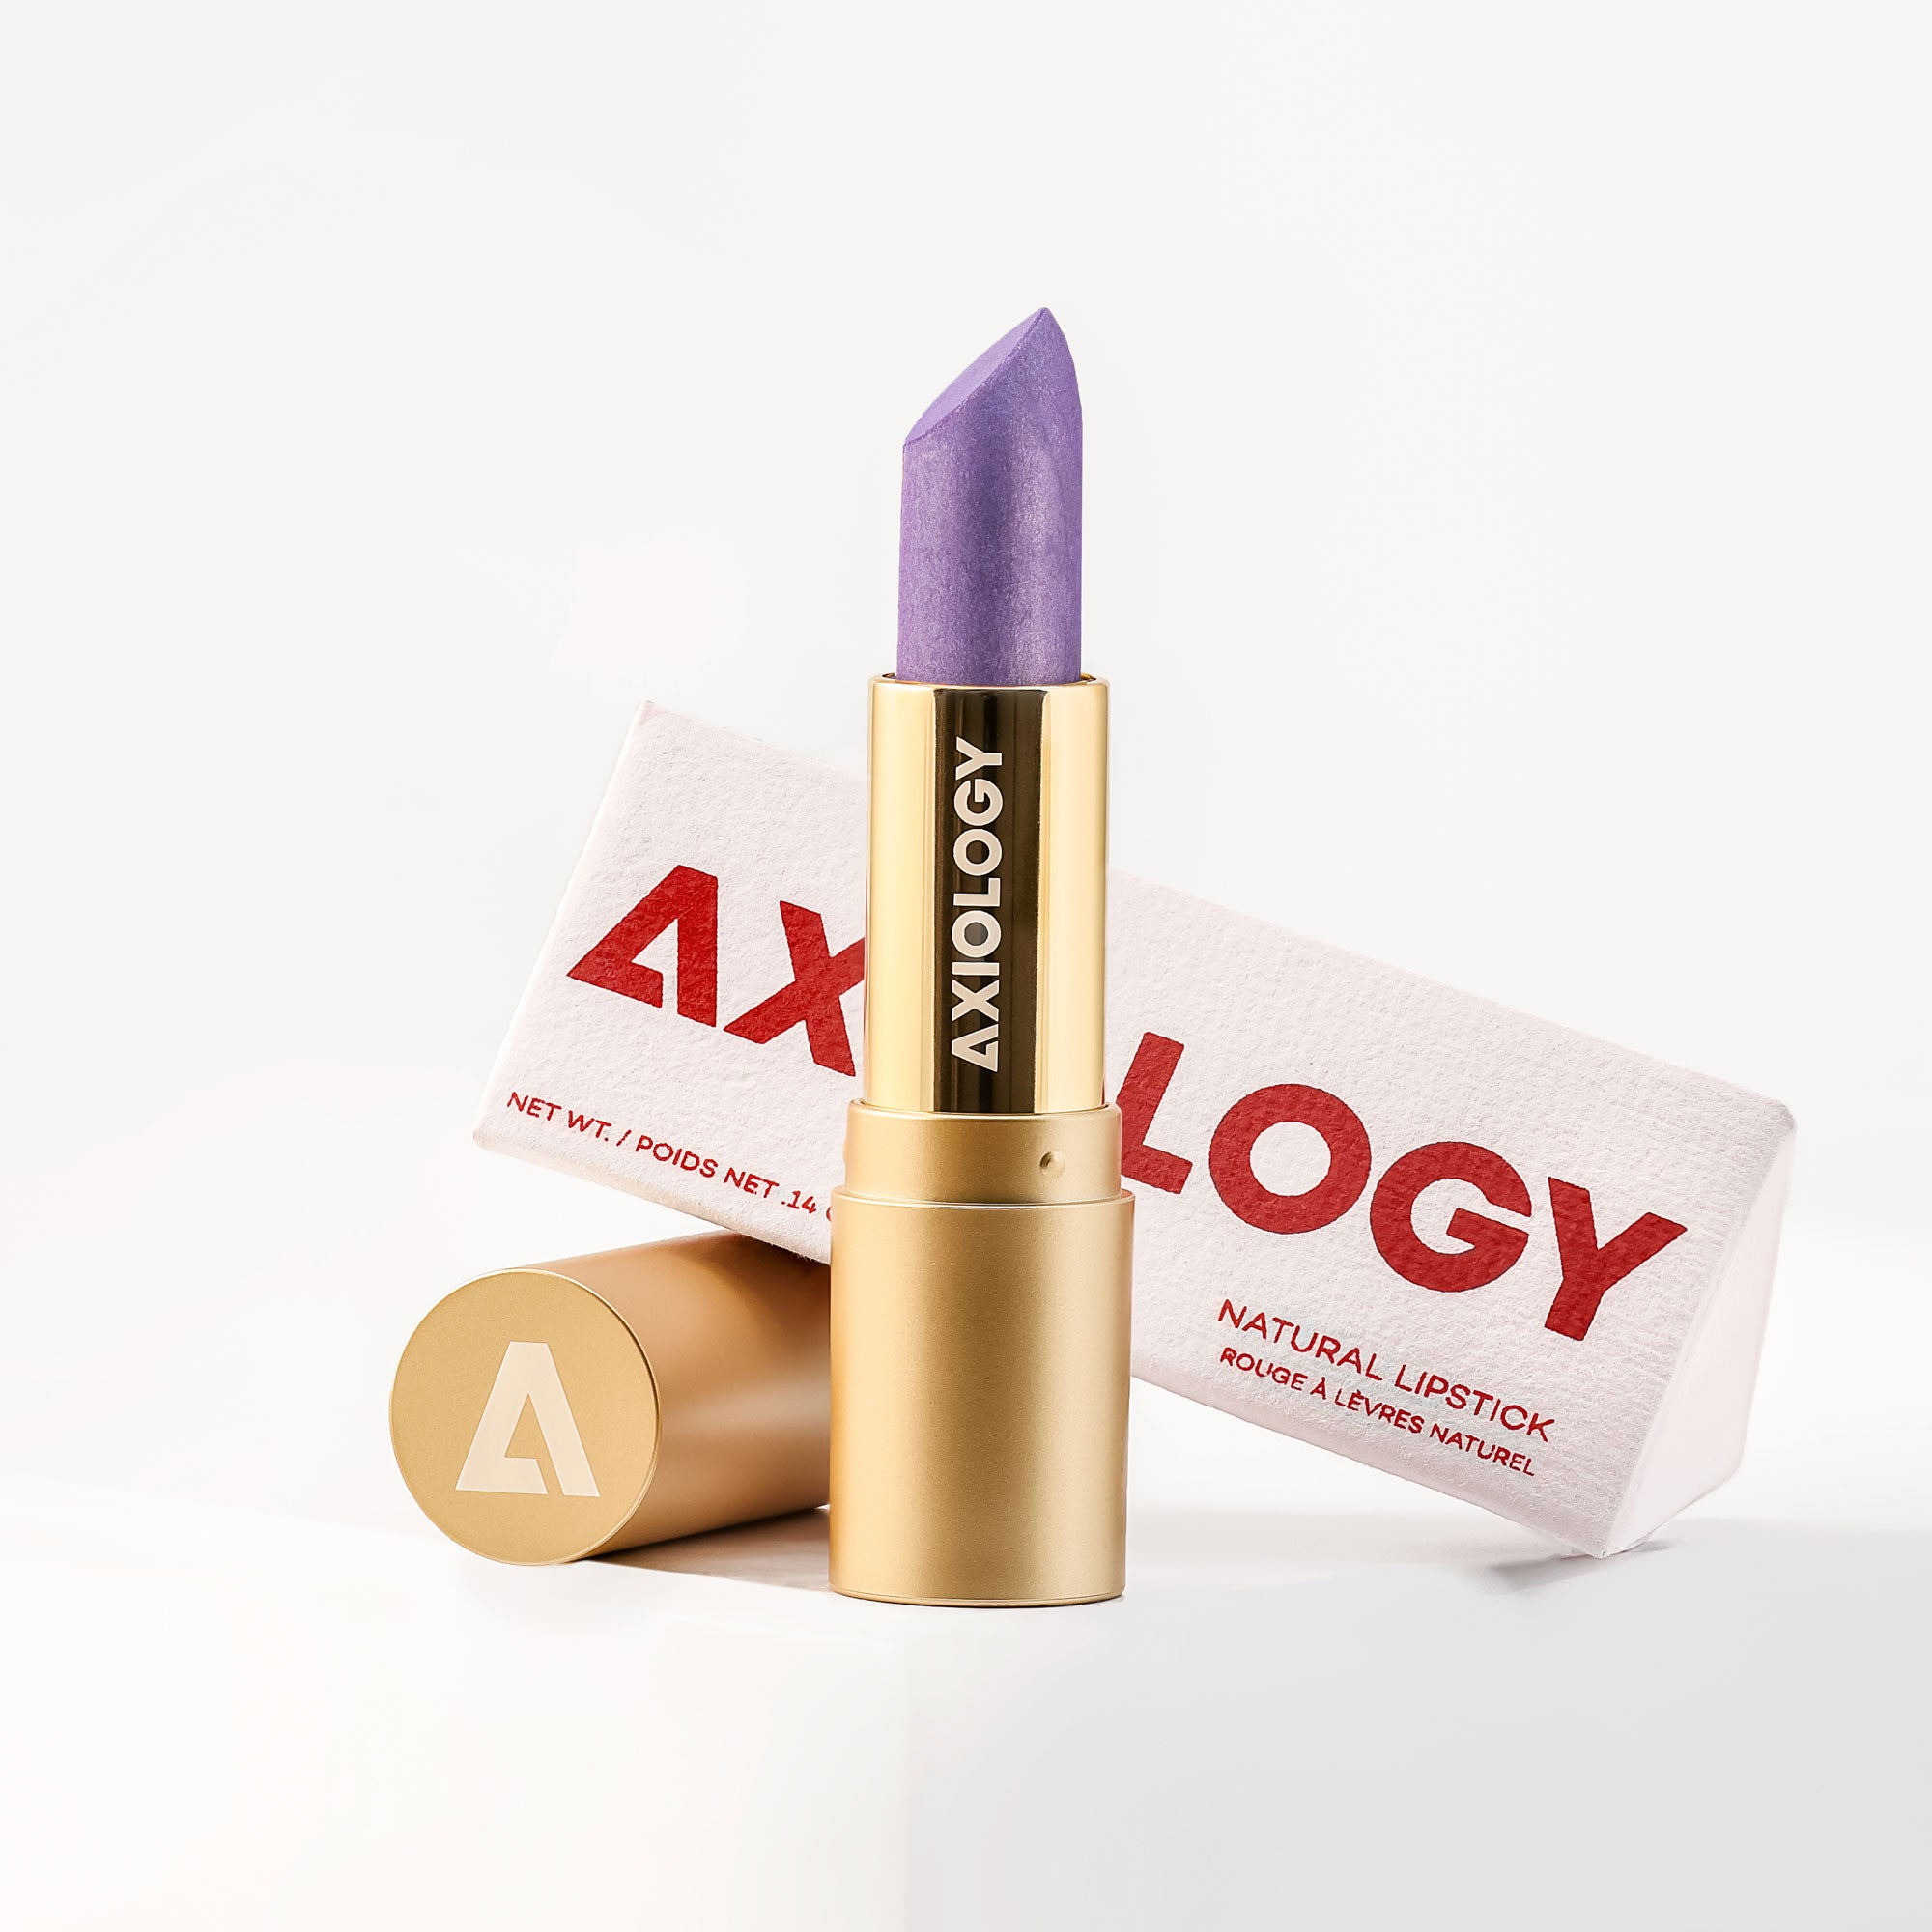 Axiology Beauty ENLIGHTEN 2020